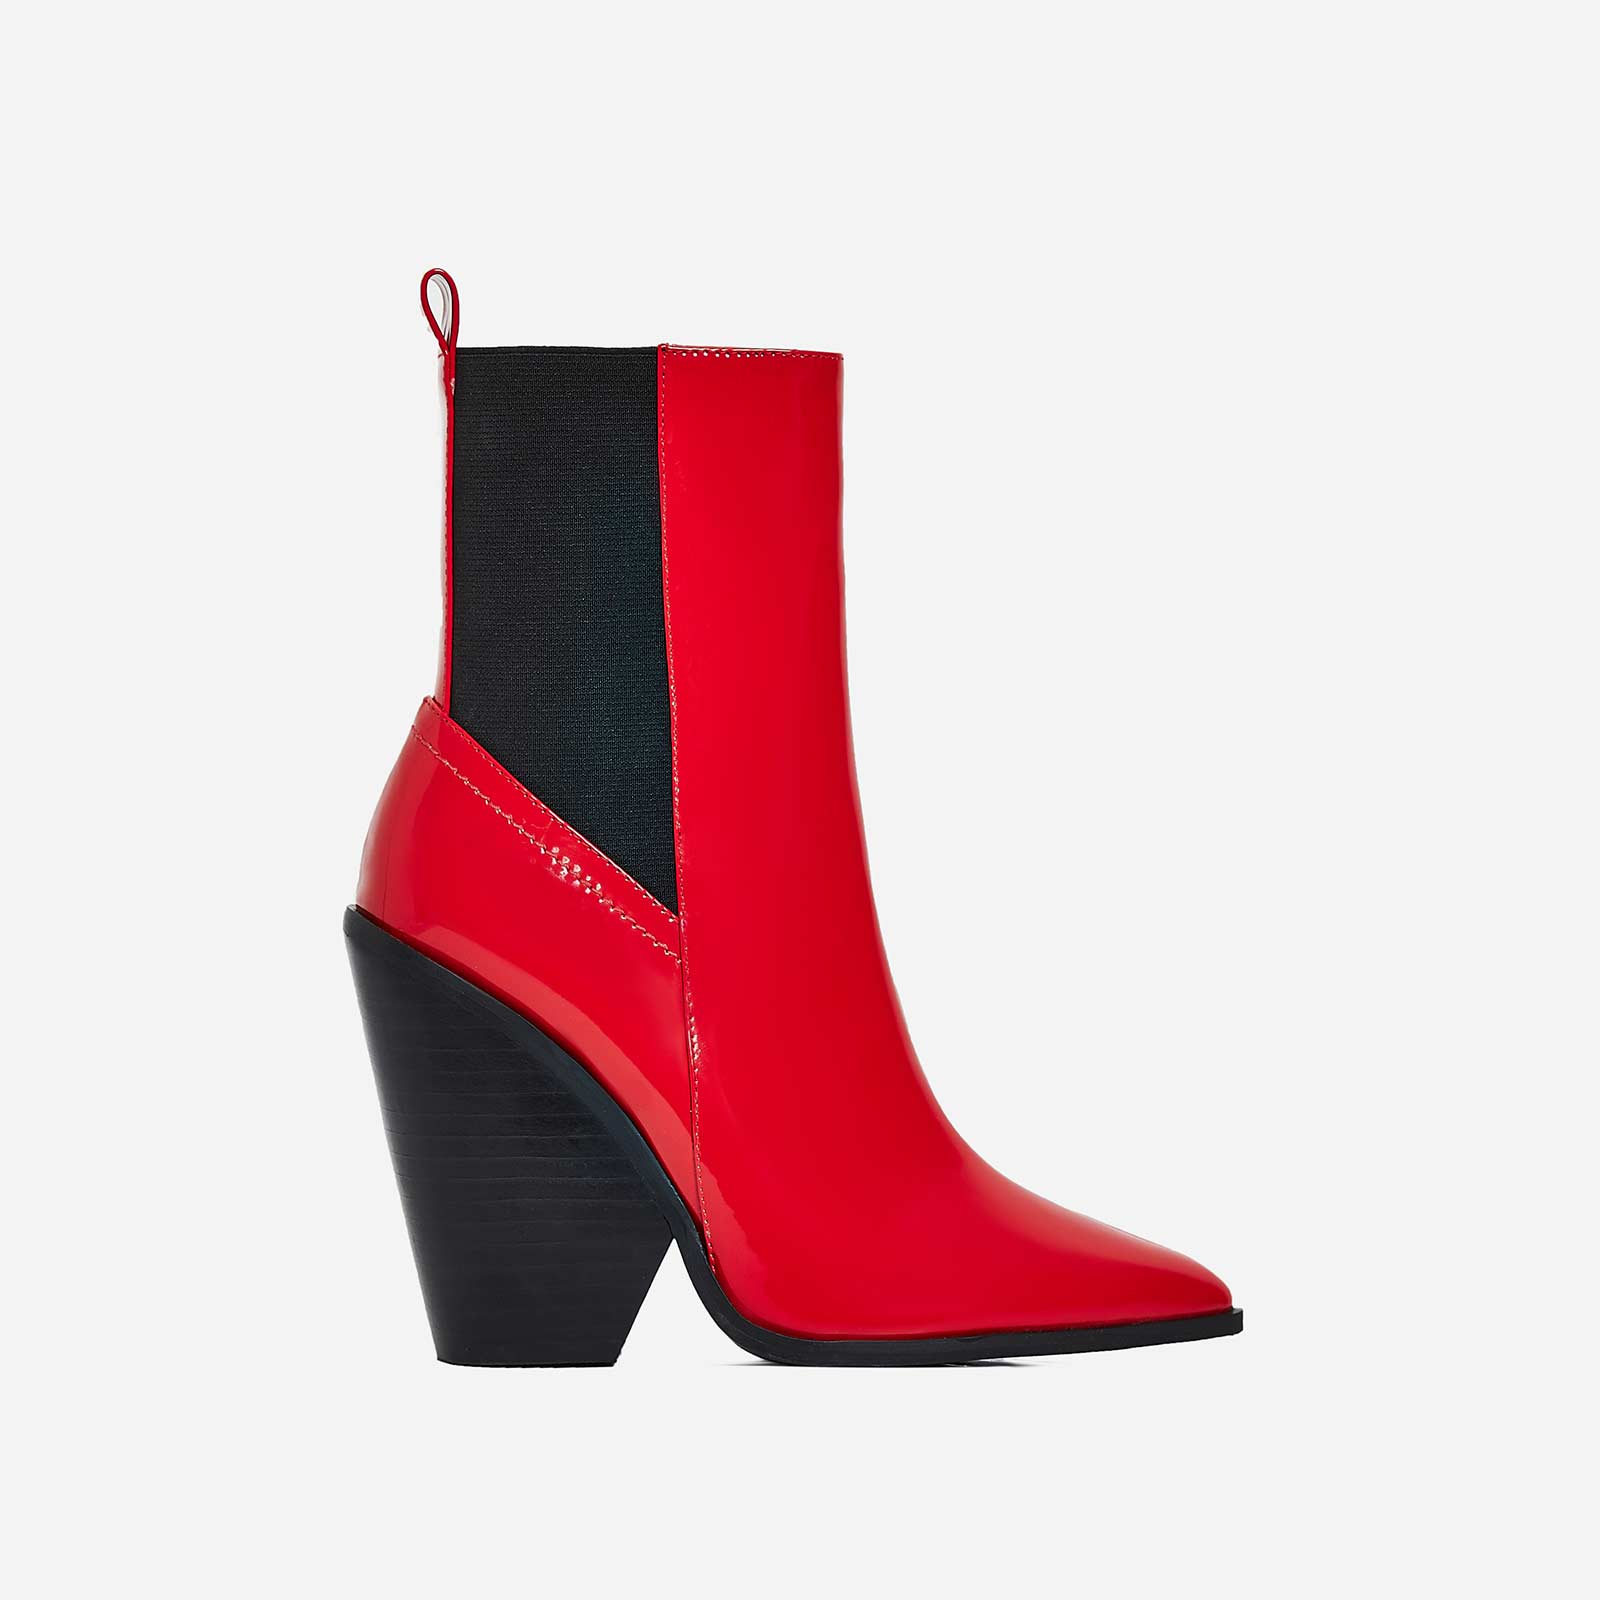 Bella Black Heel Ankle Boot In Red Patent